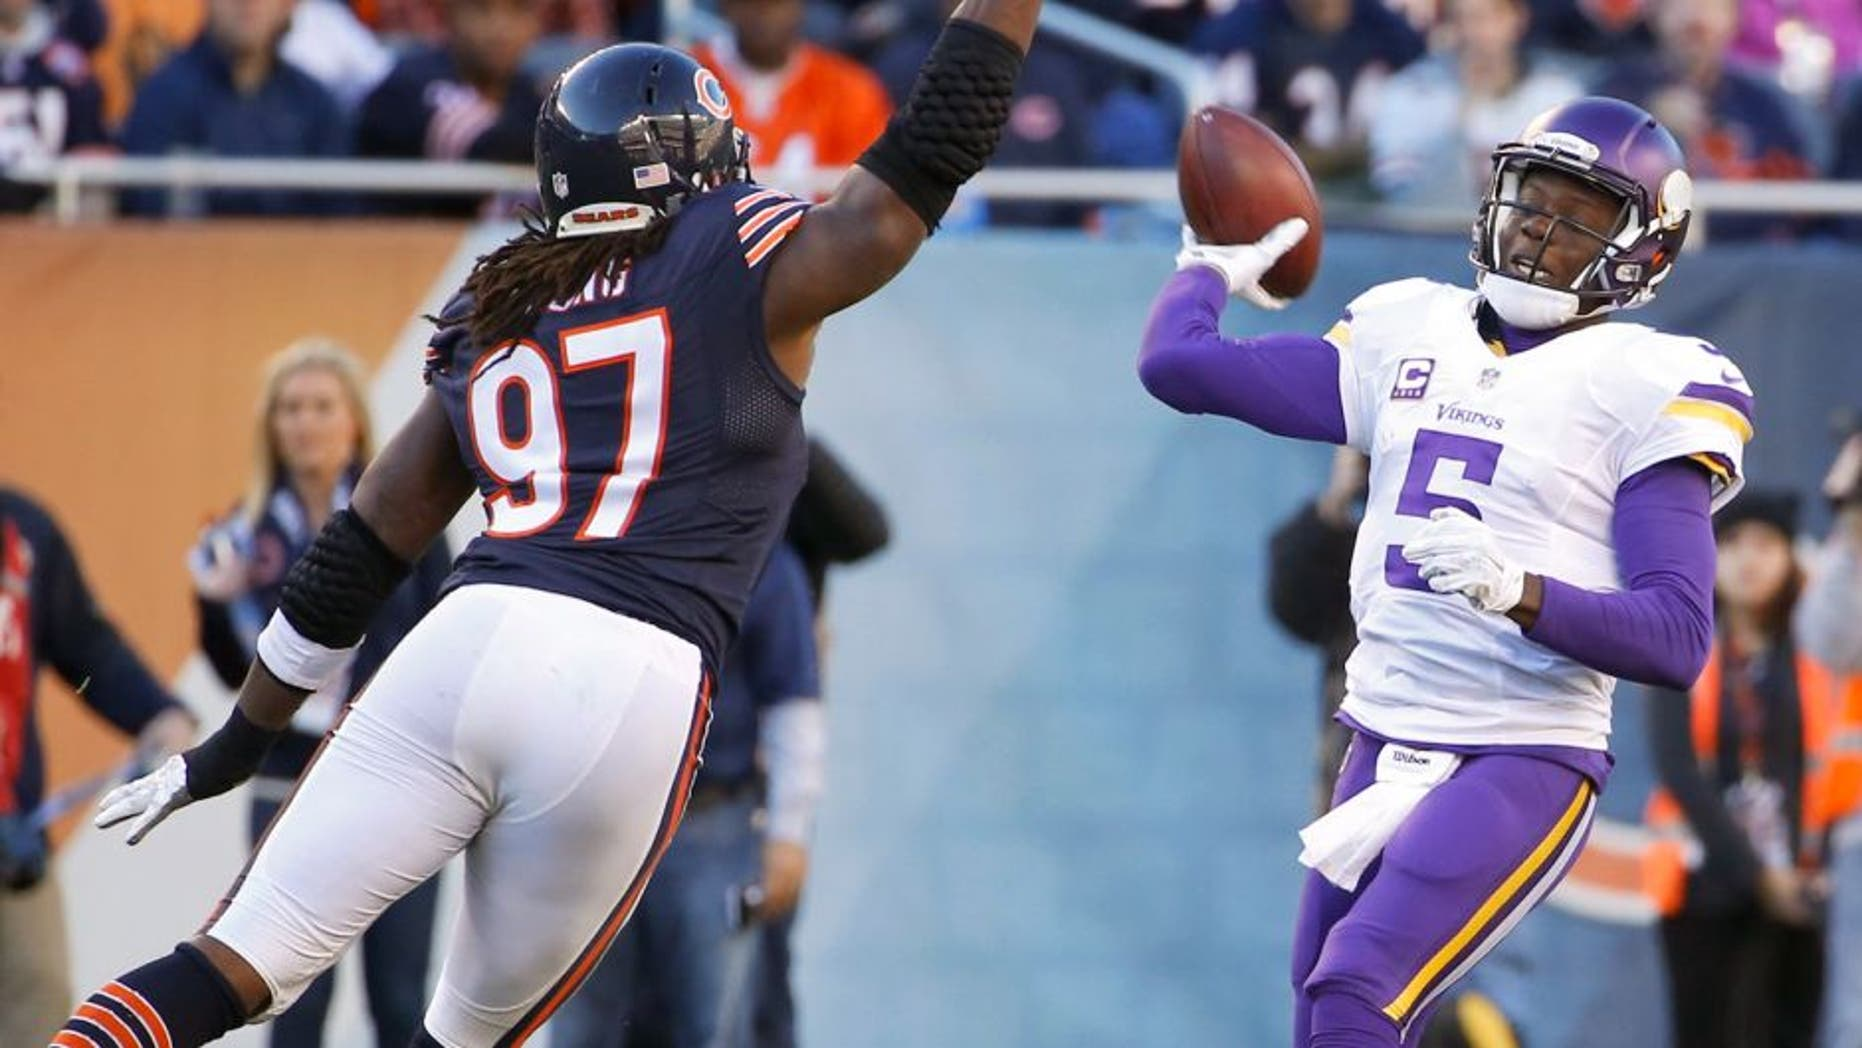 Nov 1, 2015; Chicago, IL, USA; Minnesota Vikings quarterback Teddy Bridgewater (5) throws the ball over Chicago Bears outside linebacker Willie Young (97) during the fourth quarter at Soldier Field. The Vikings won 23-20. Mandatory Credit: Kamil Krzaczynski-USA TODAY Sports